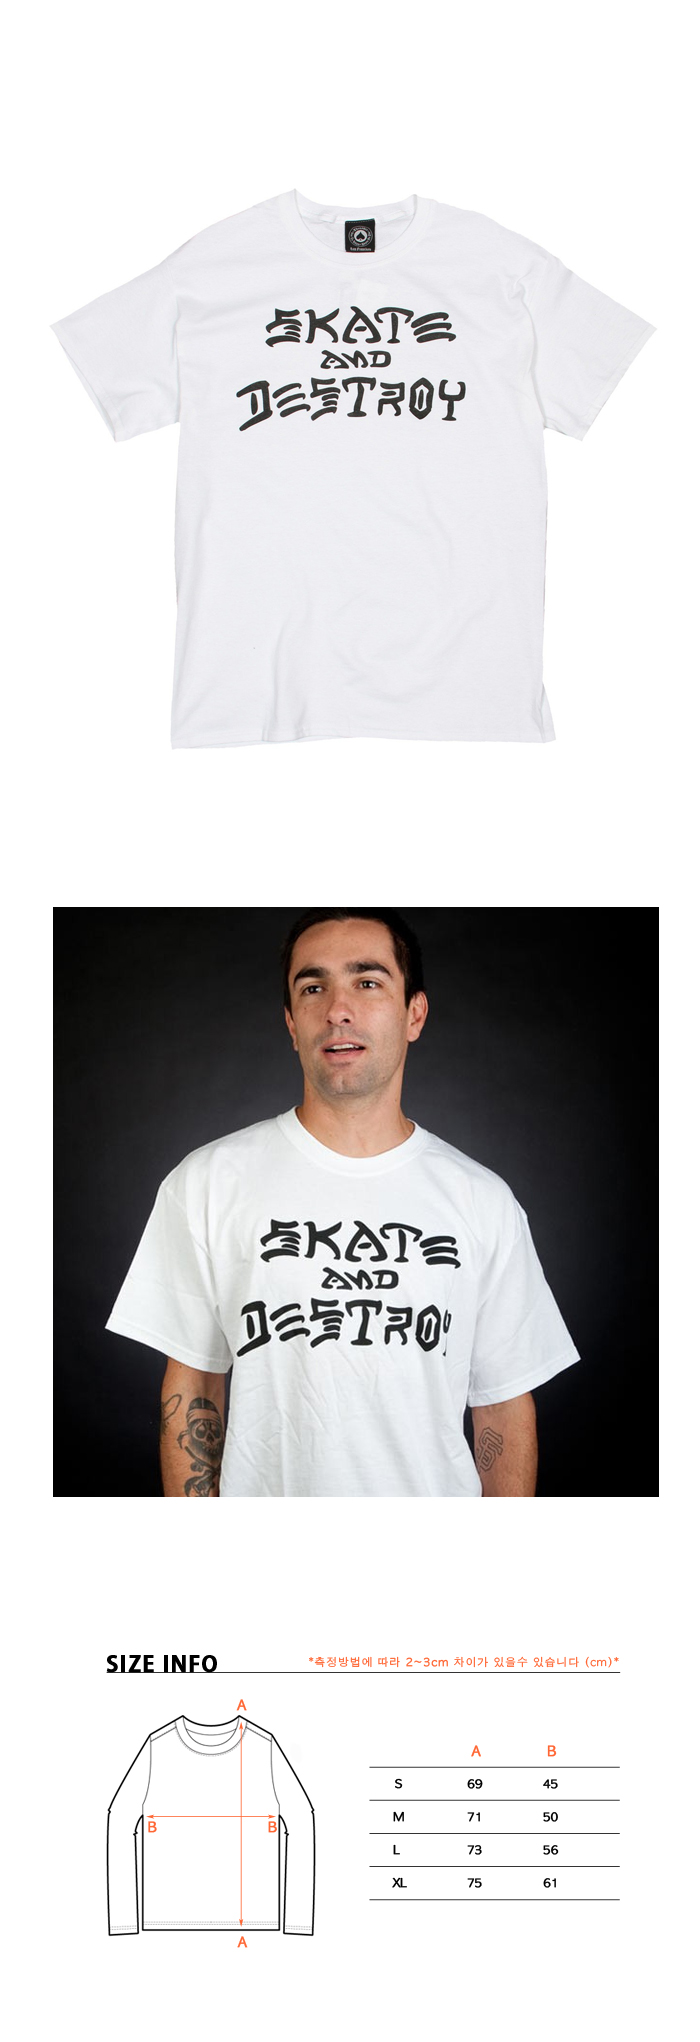 skate_and_destroy_tee_white.jpg